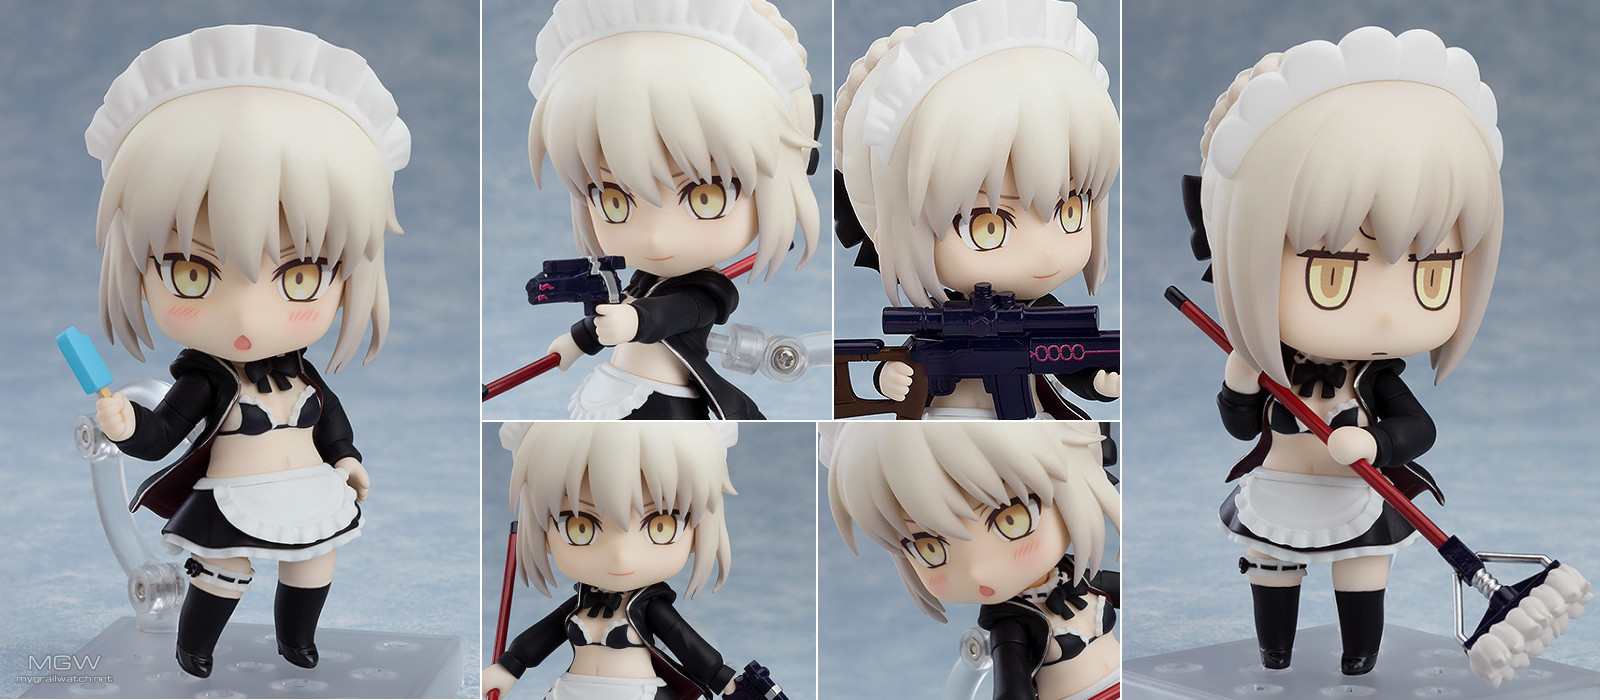 Nendoroid Rider Altria Pendragon Alter by Good Smile Company from Fate Grand Order